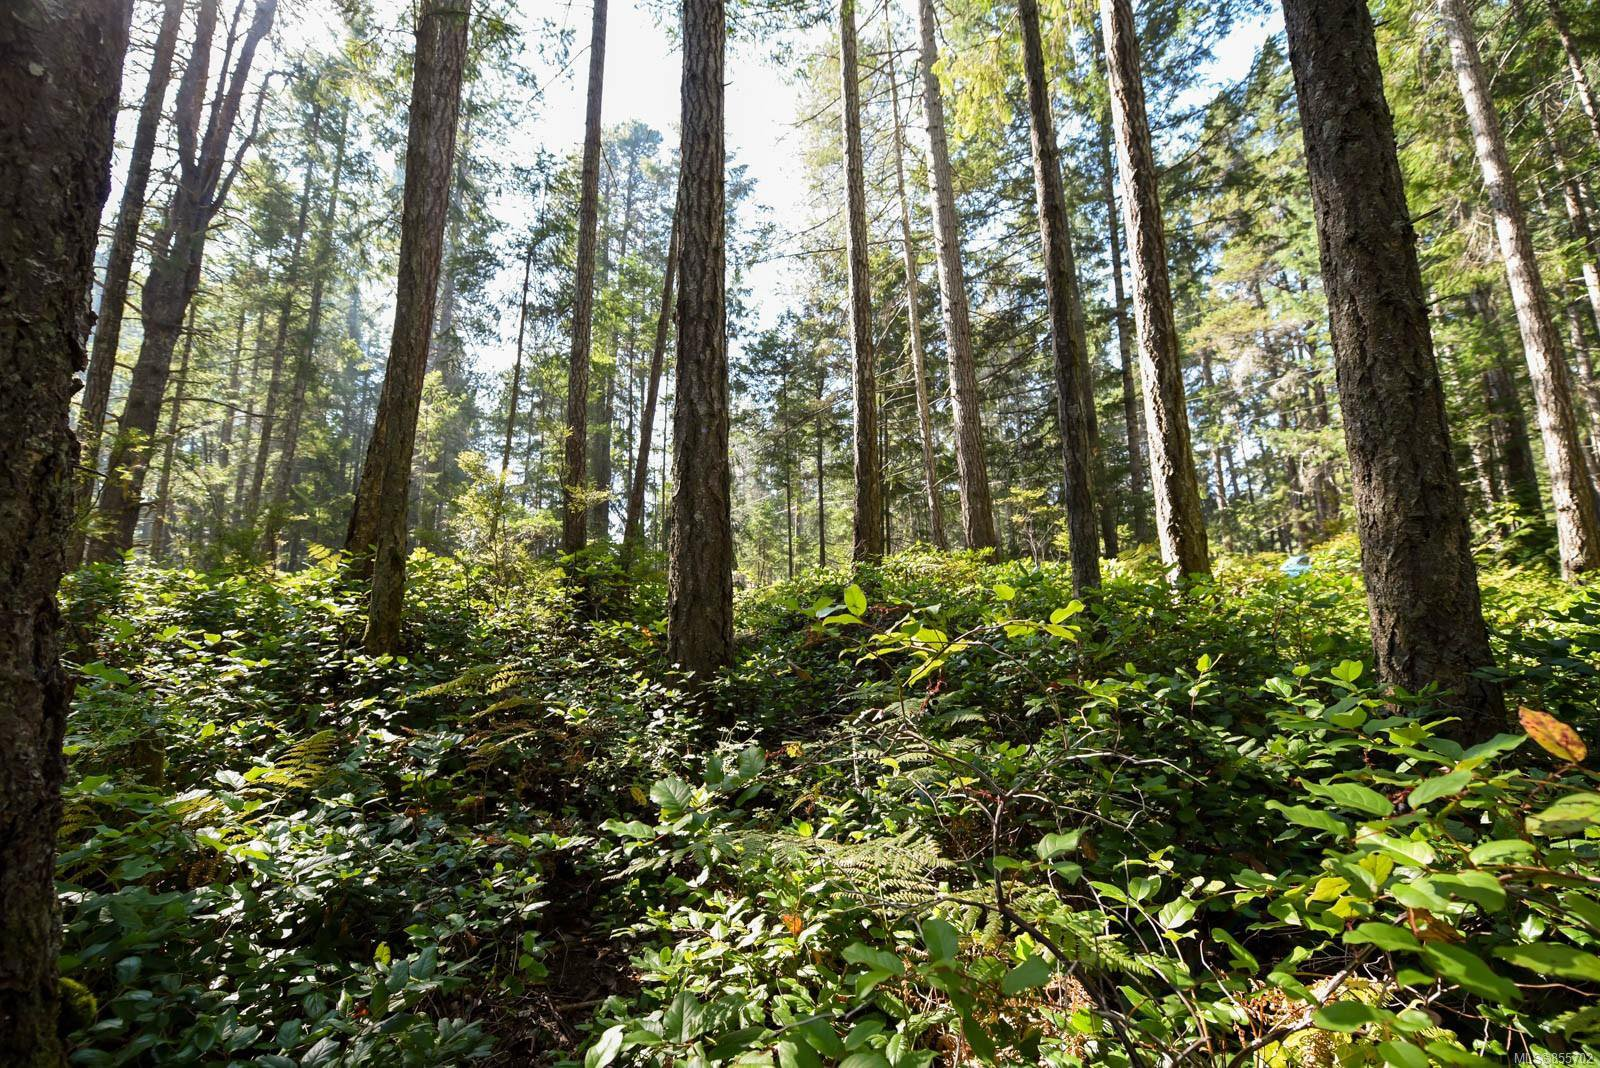 Main Photo: Lot 191 Brent Rd in : CV Comox Peninsula Land for sale (Comox Valley)  : MLS®# 855702